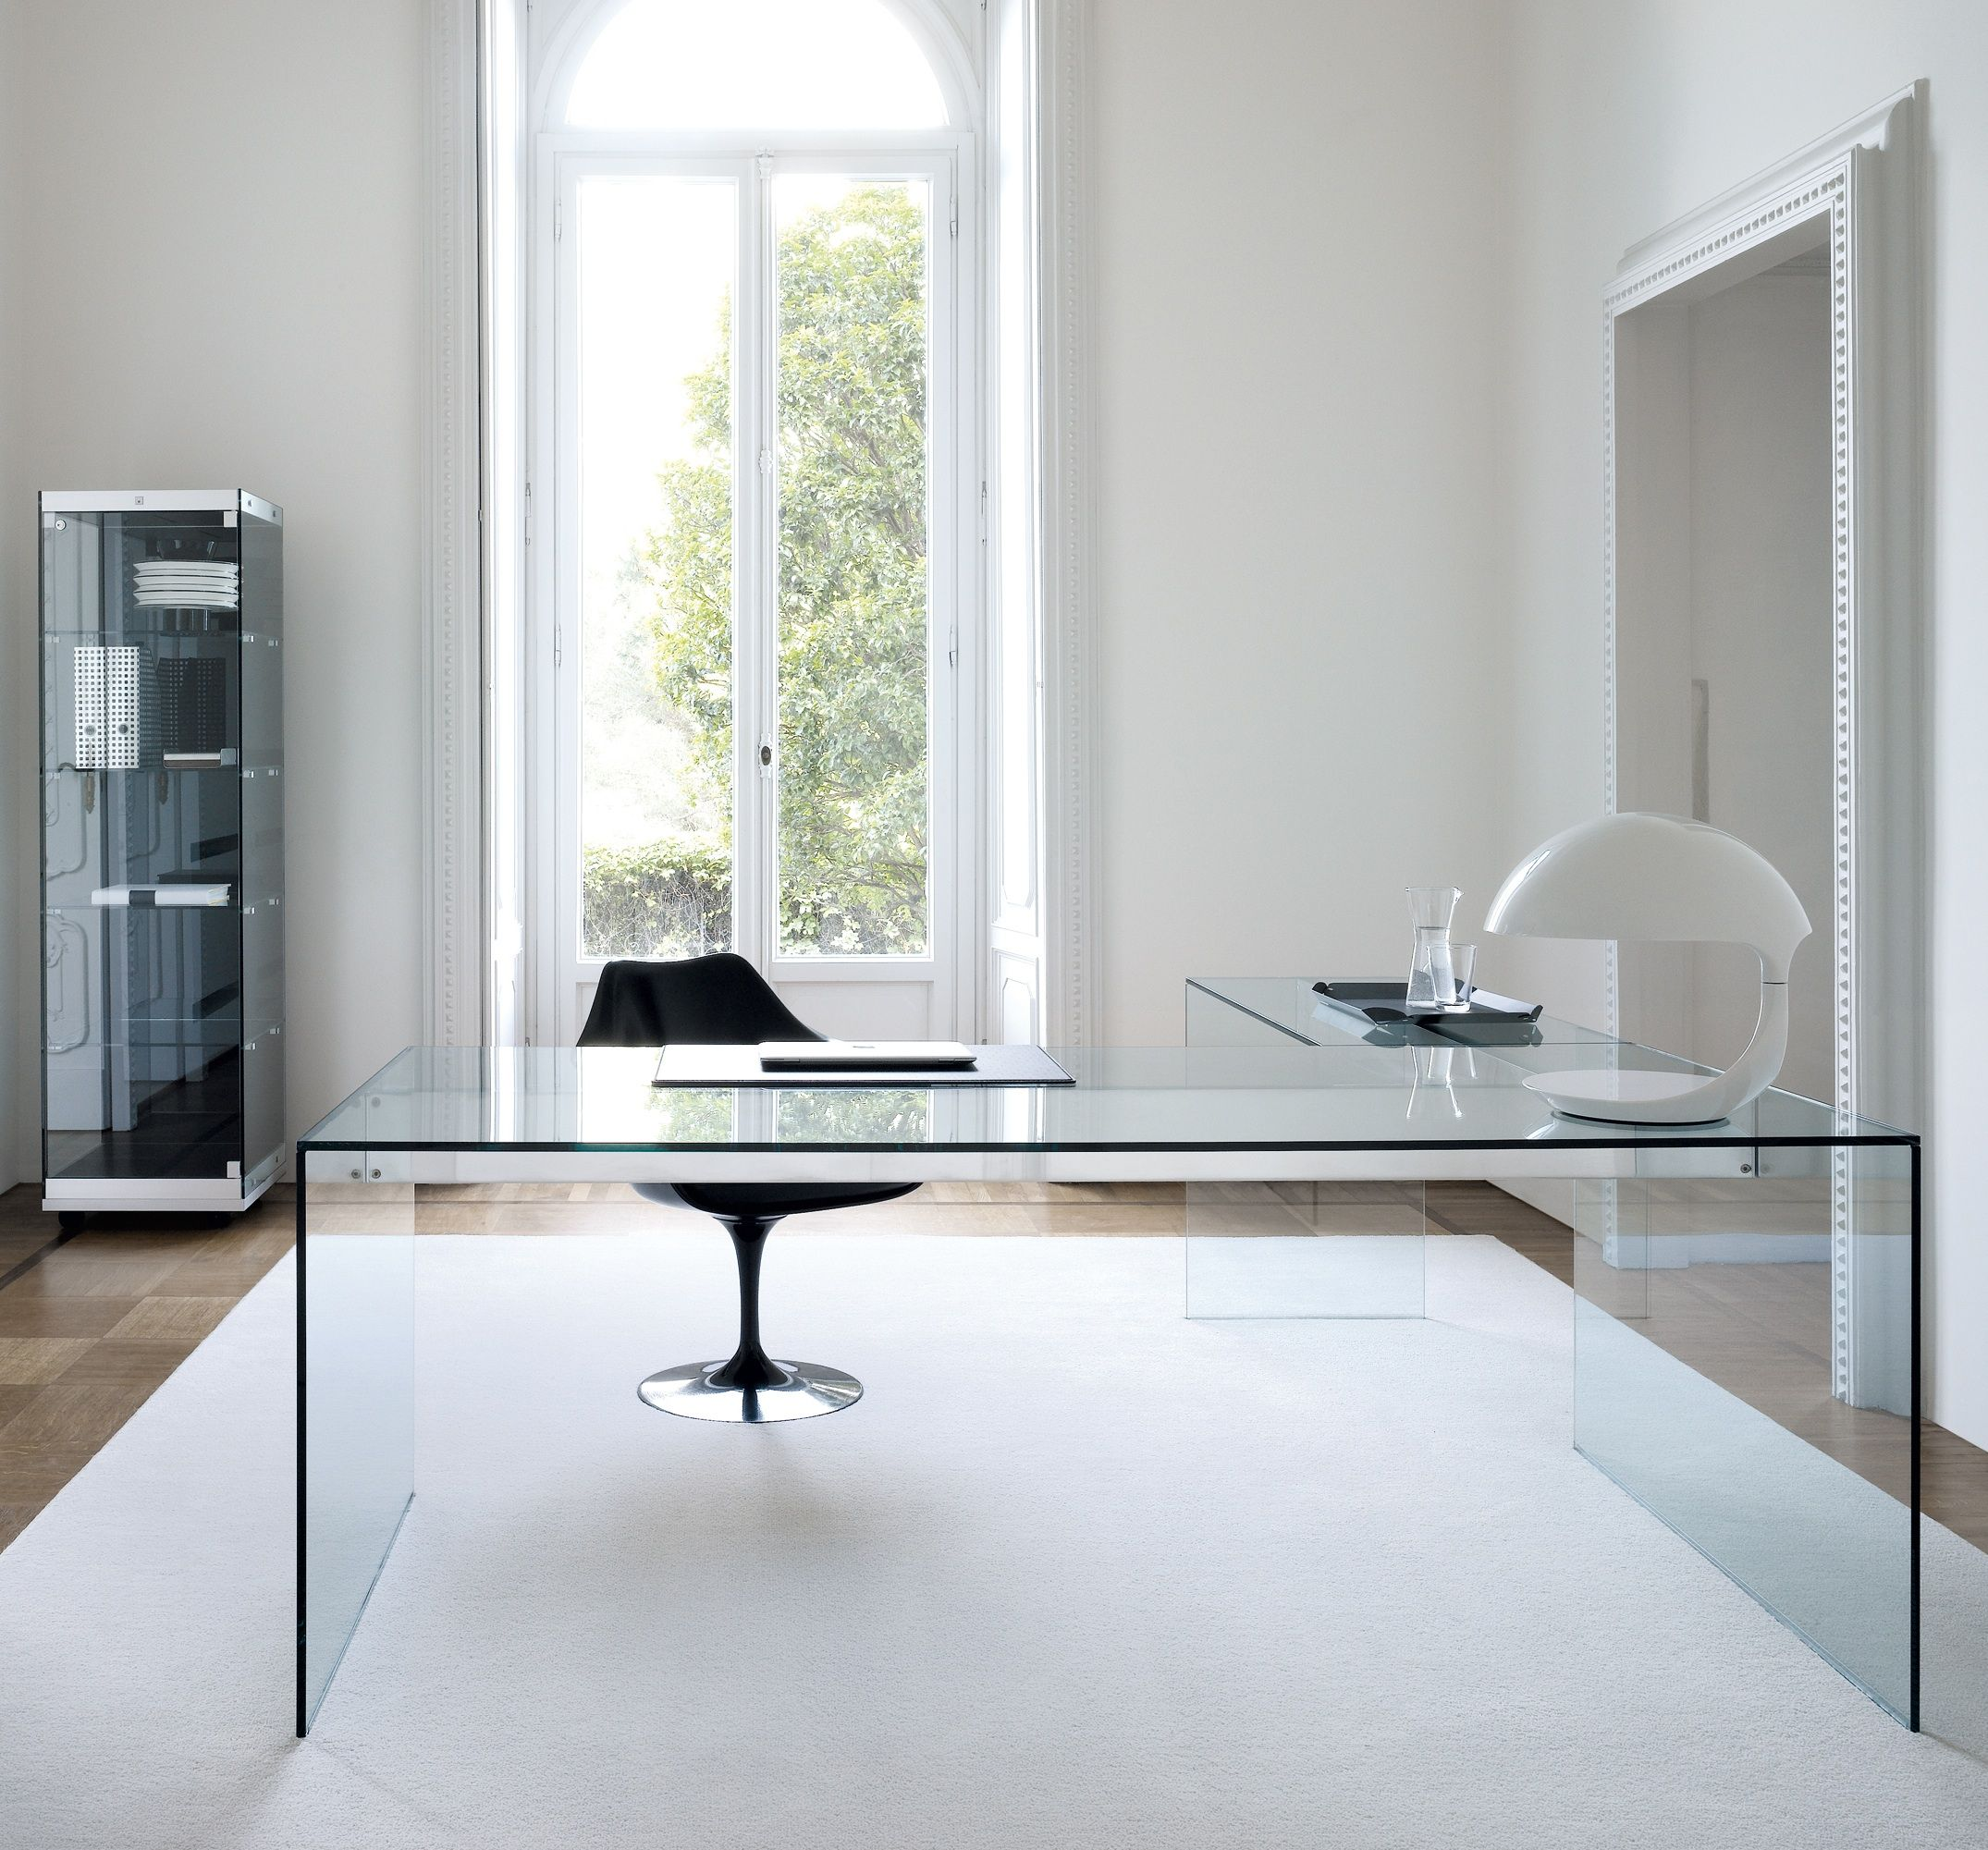 air glass desk l by gallotti radice thick slabs of toughened glass form a luxurious glass desk in an l shape for maximum work space - Modern Home Office Glass Desk